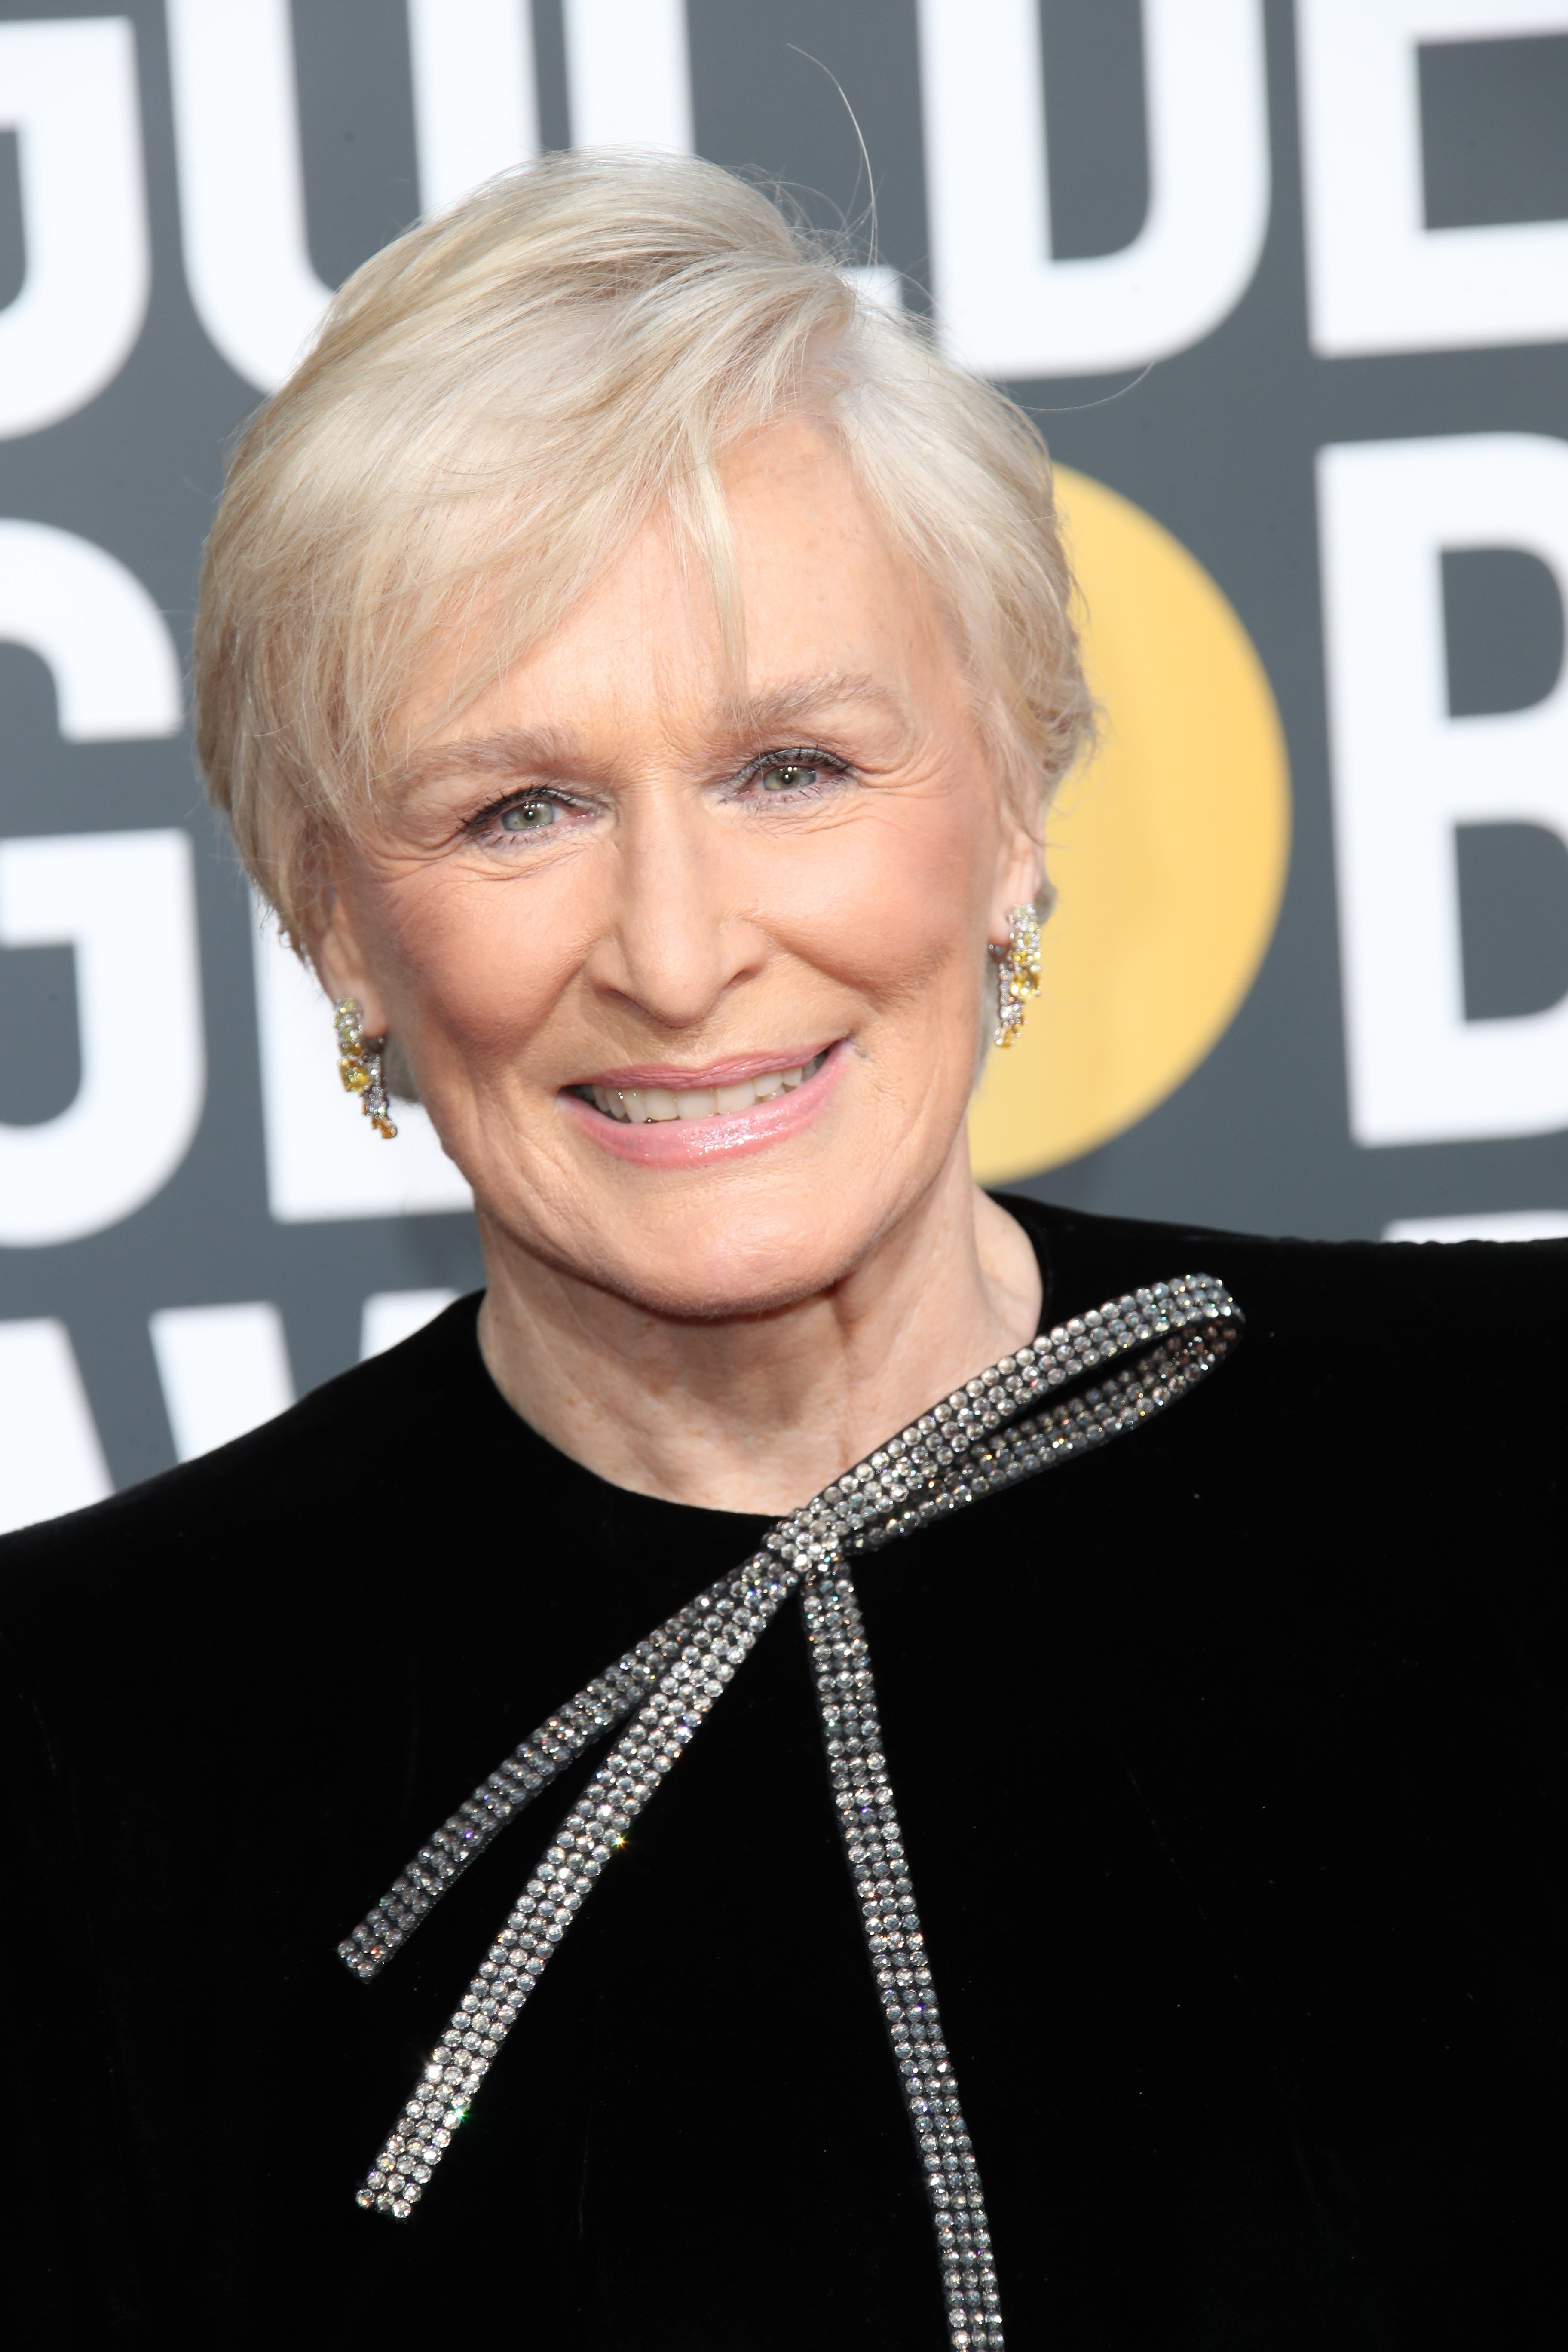 Glenn Close says she feels 'as sexual and as eager as I ever have' at age 71